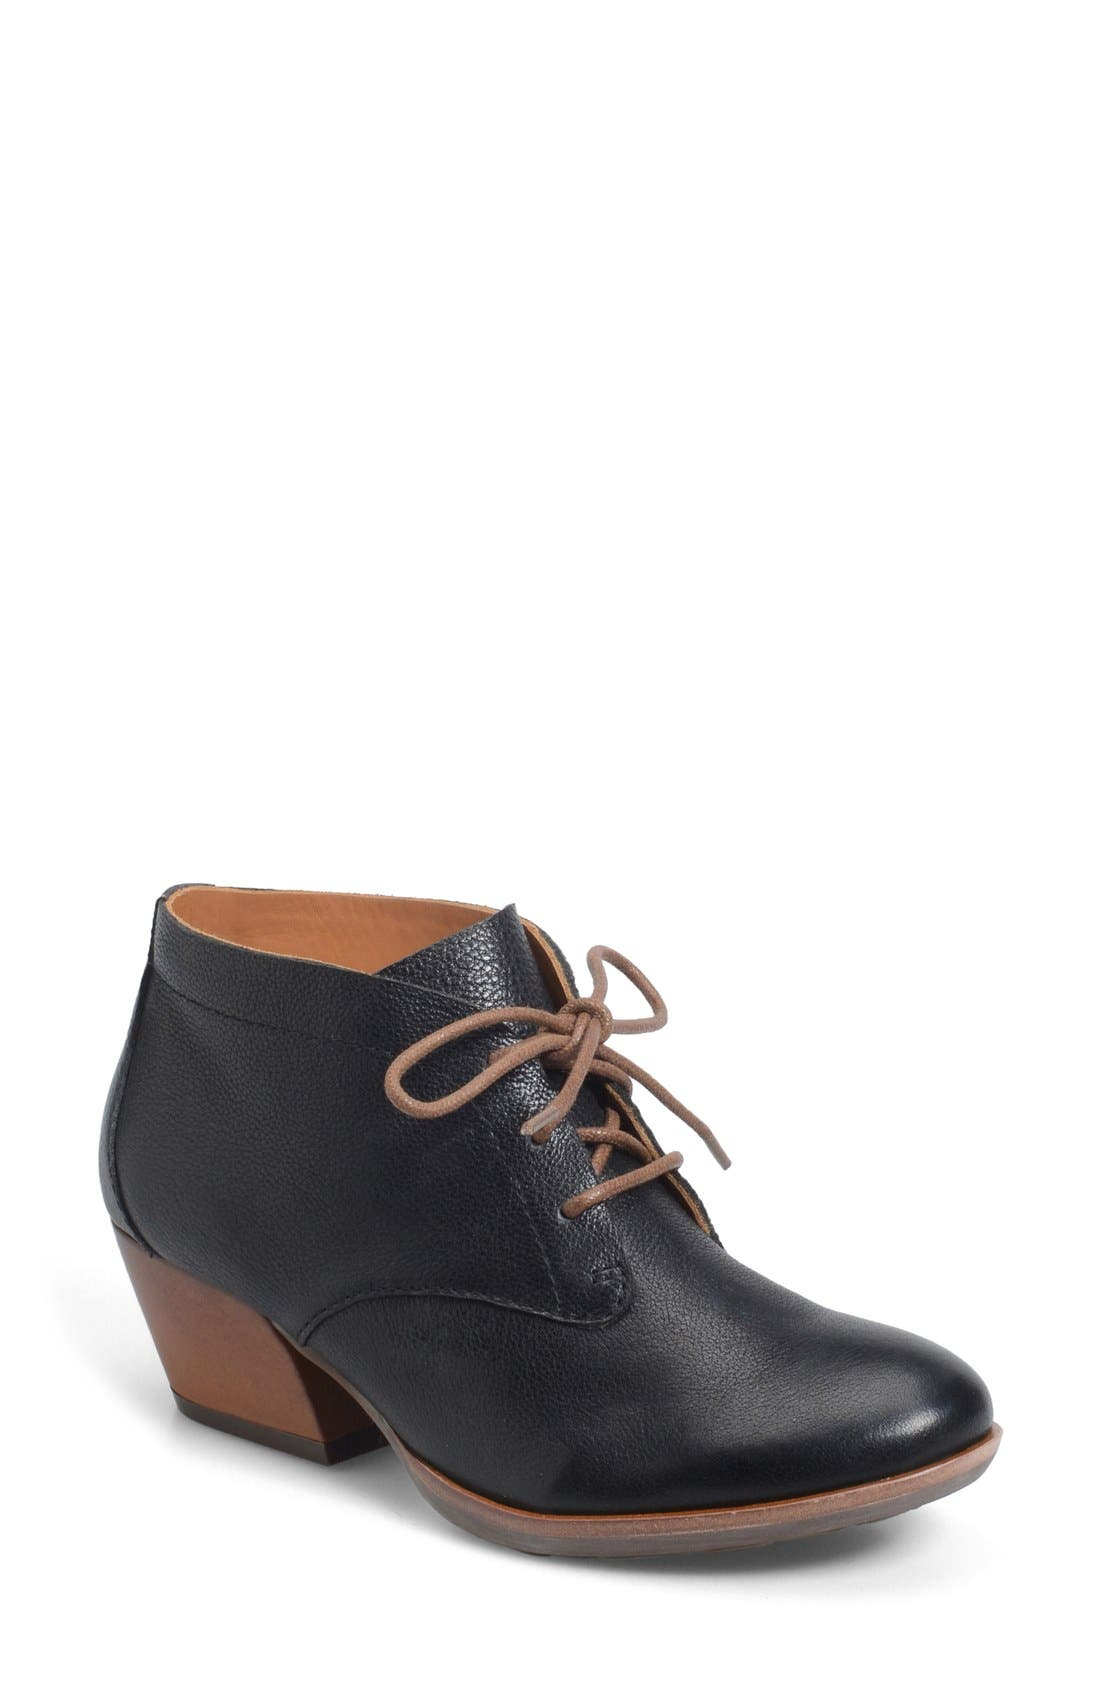 'Helene' Leather Bootie, Main, color, 001